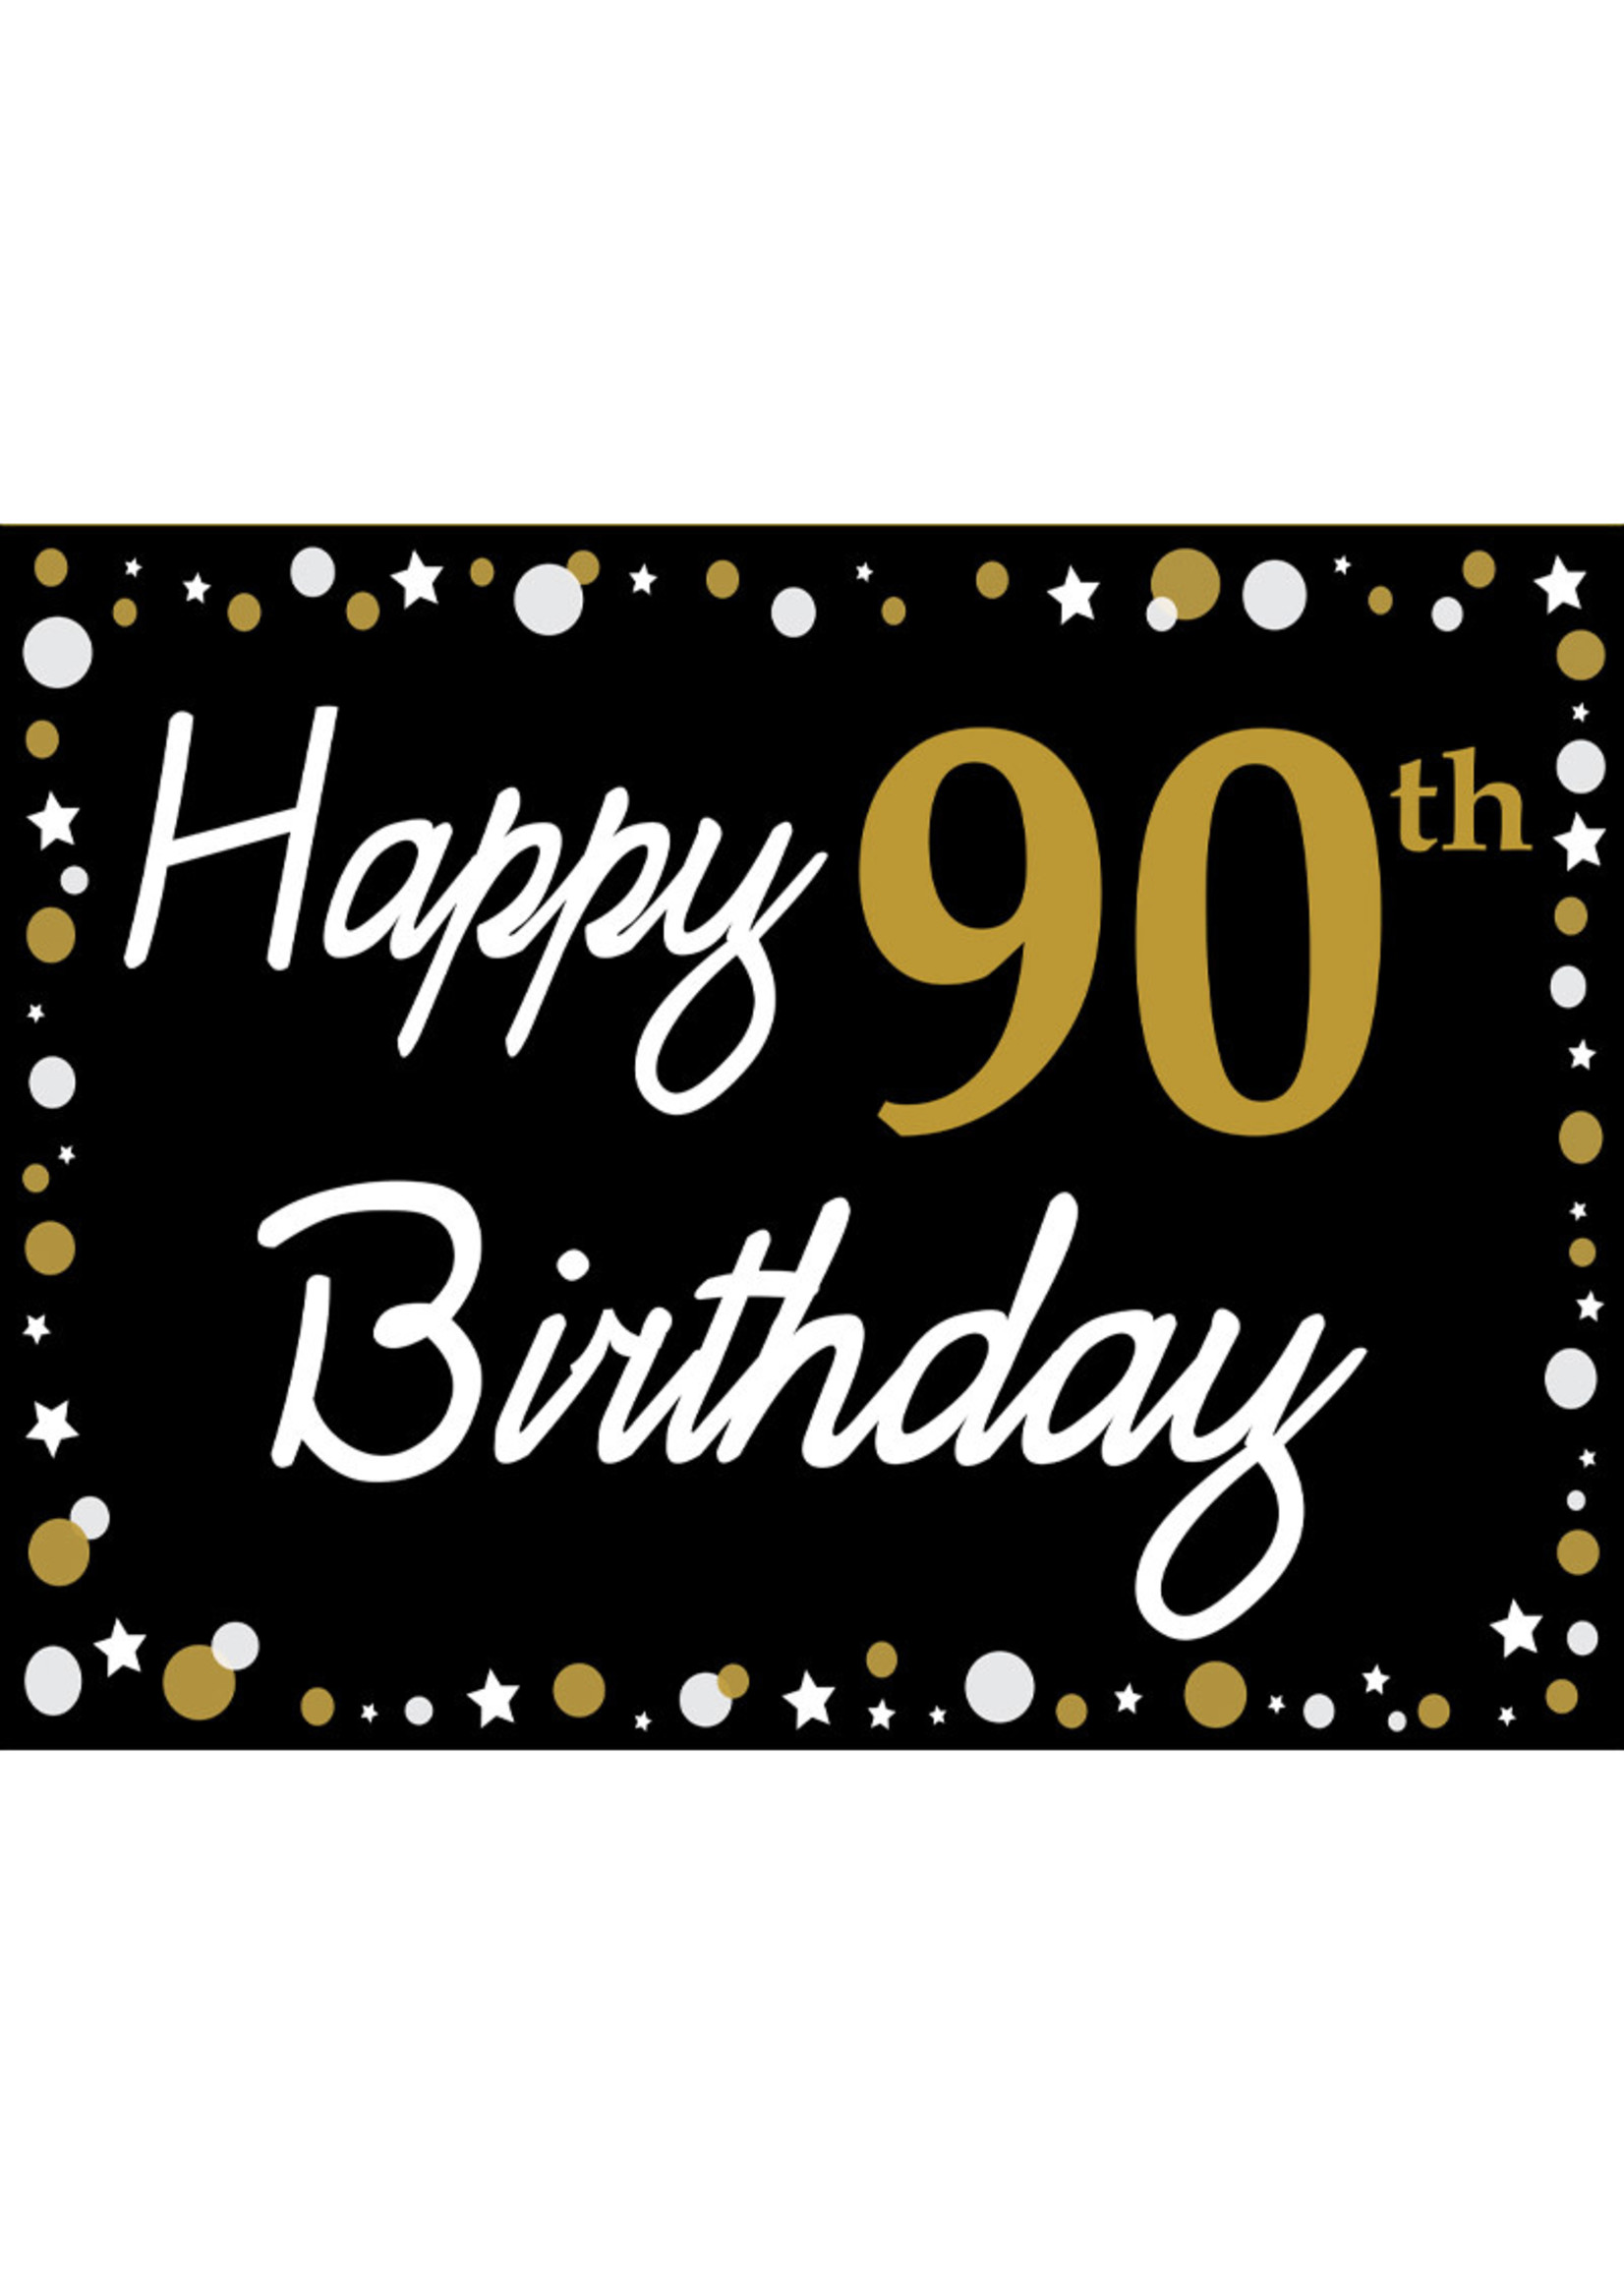 Happy 90th Birthday - Black, Gold & White Yard Sign